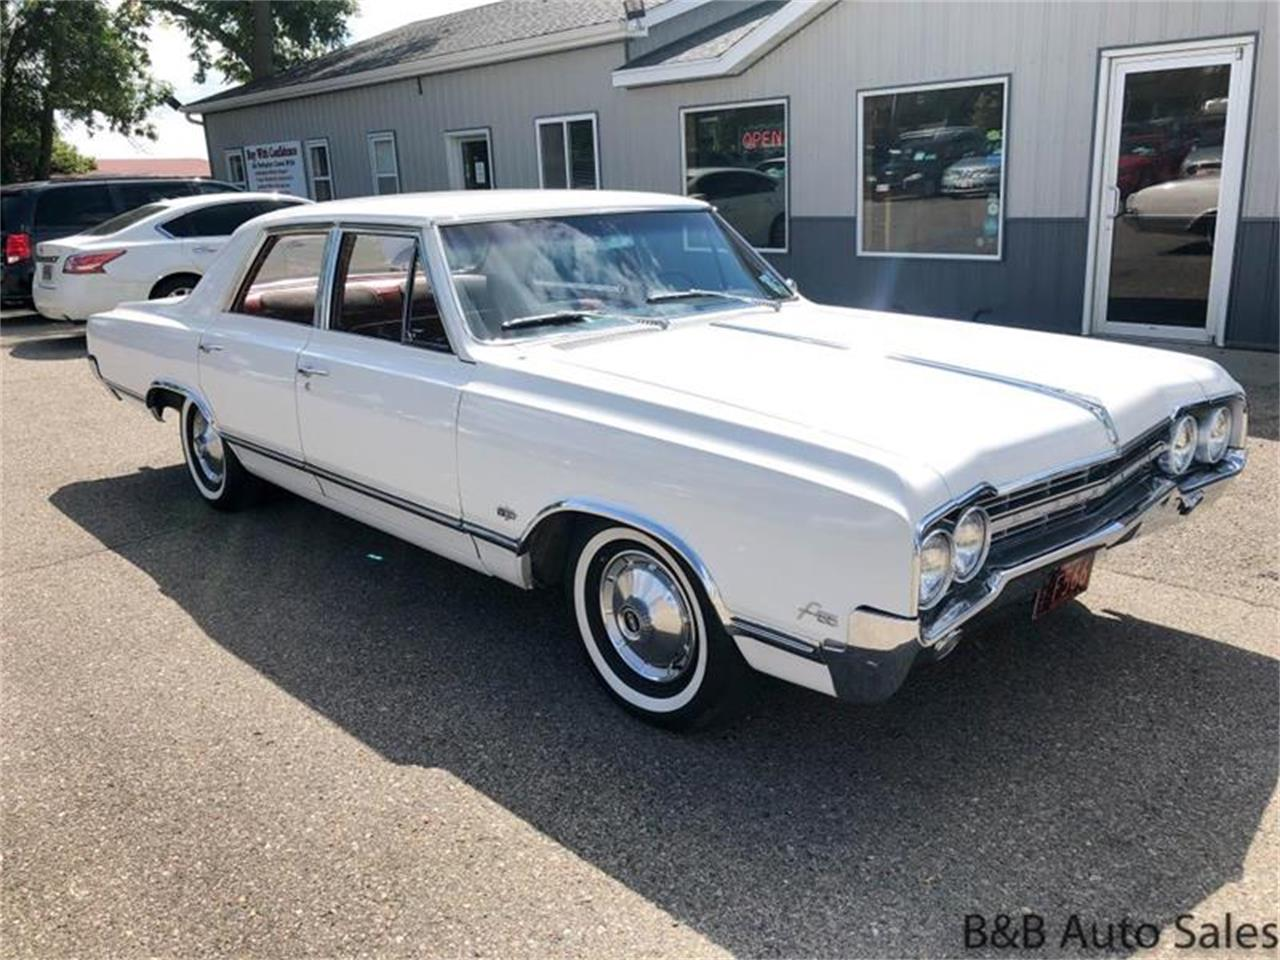 For Sale: 1965 Oldsmobile F85 in Brookings, South Dakota